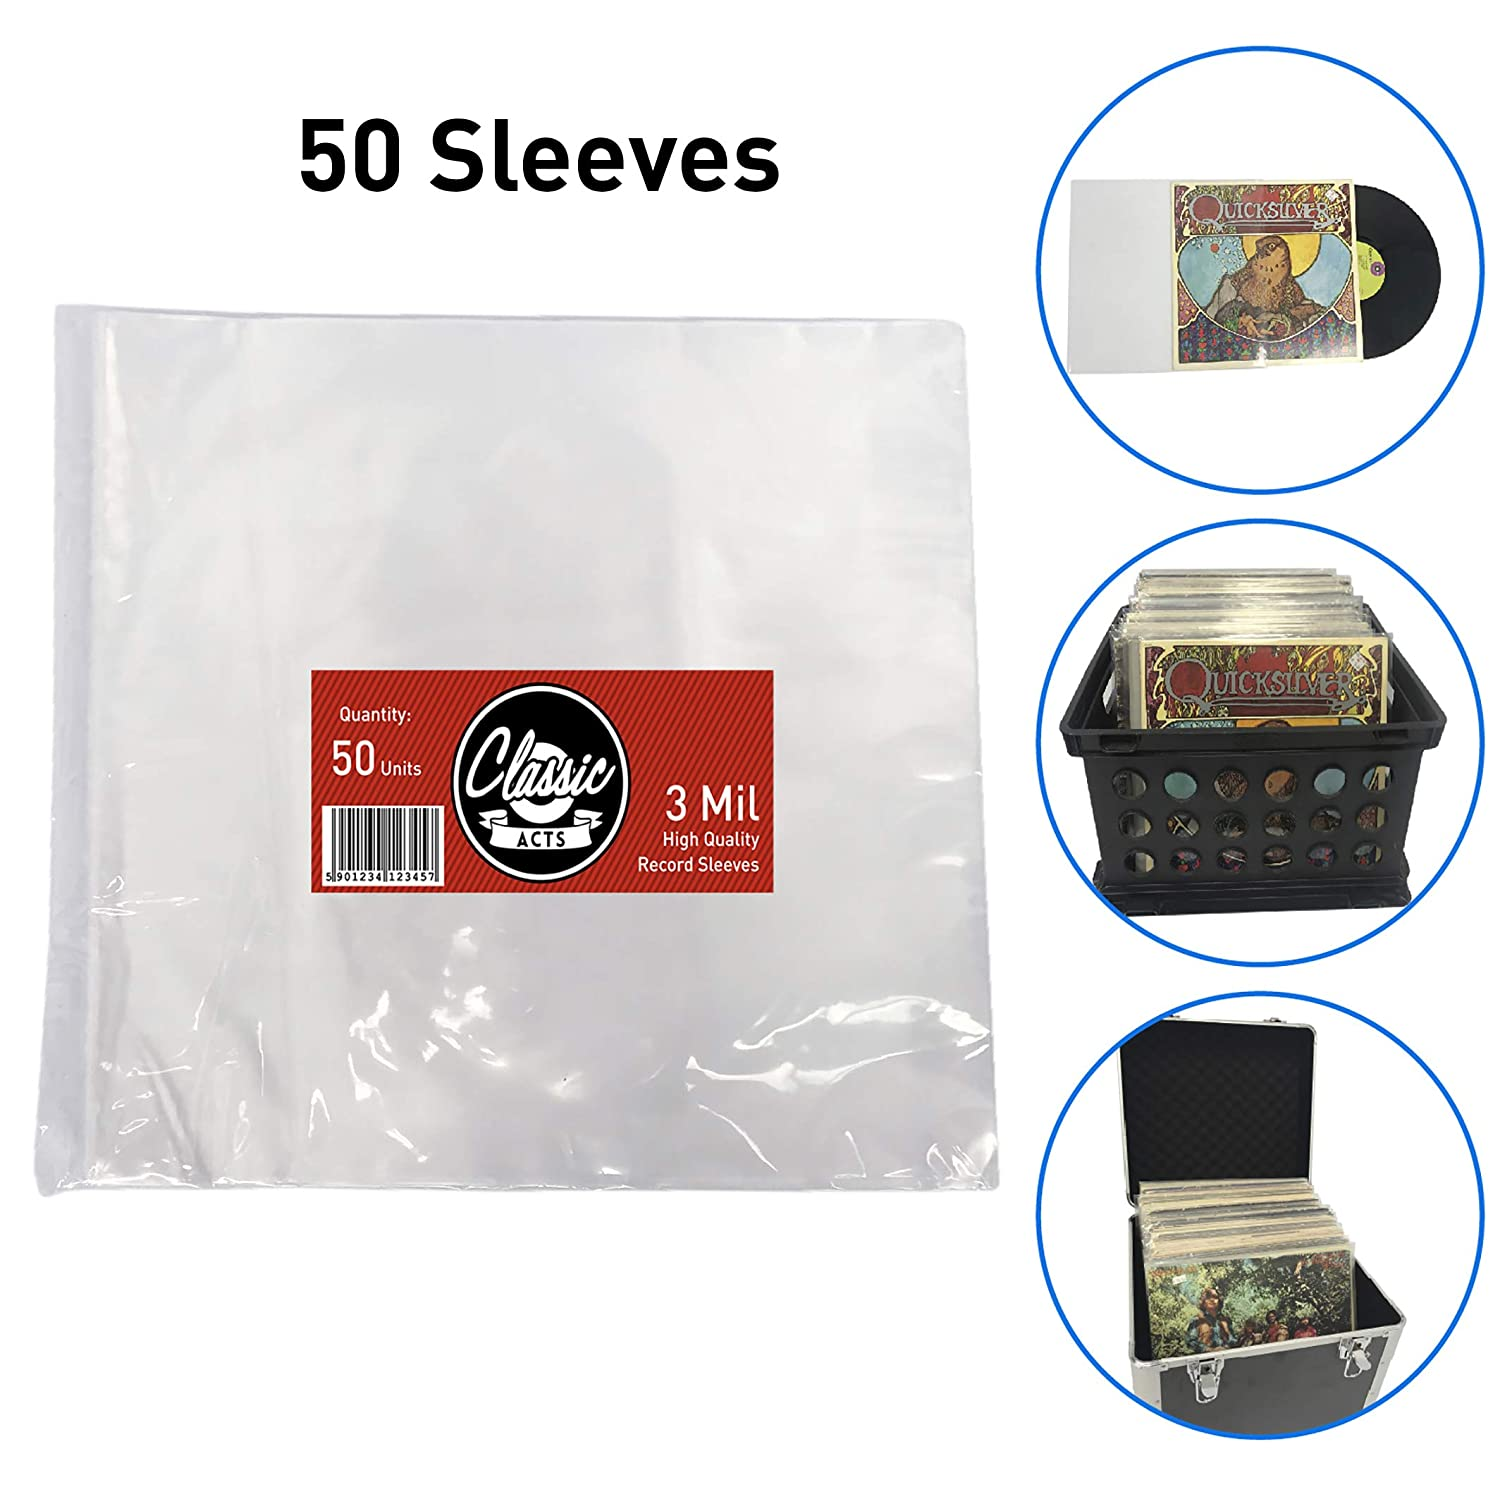 "Classic Acts Vinyl Record Sleeves Protect Your Album Covers - LP Sleeves Fit Single and Double Albums – Size: 12.5"" X 12.75"" - 3 Mil Thick (25 Pack) EasyGo Products EGP-SLV-001"